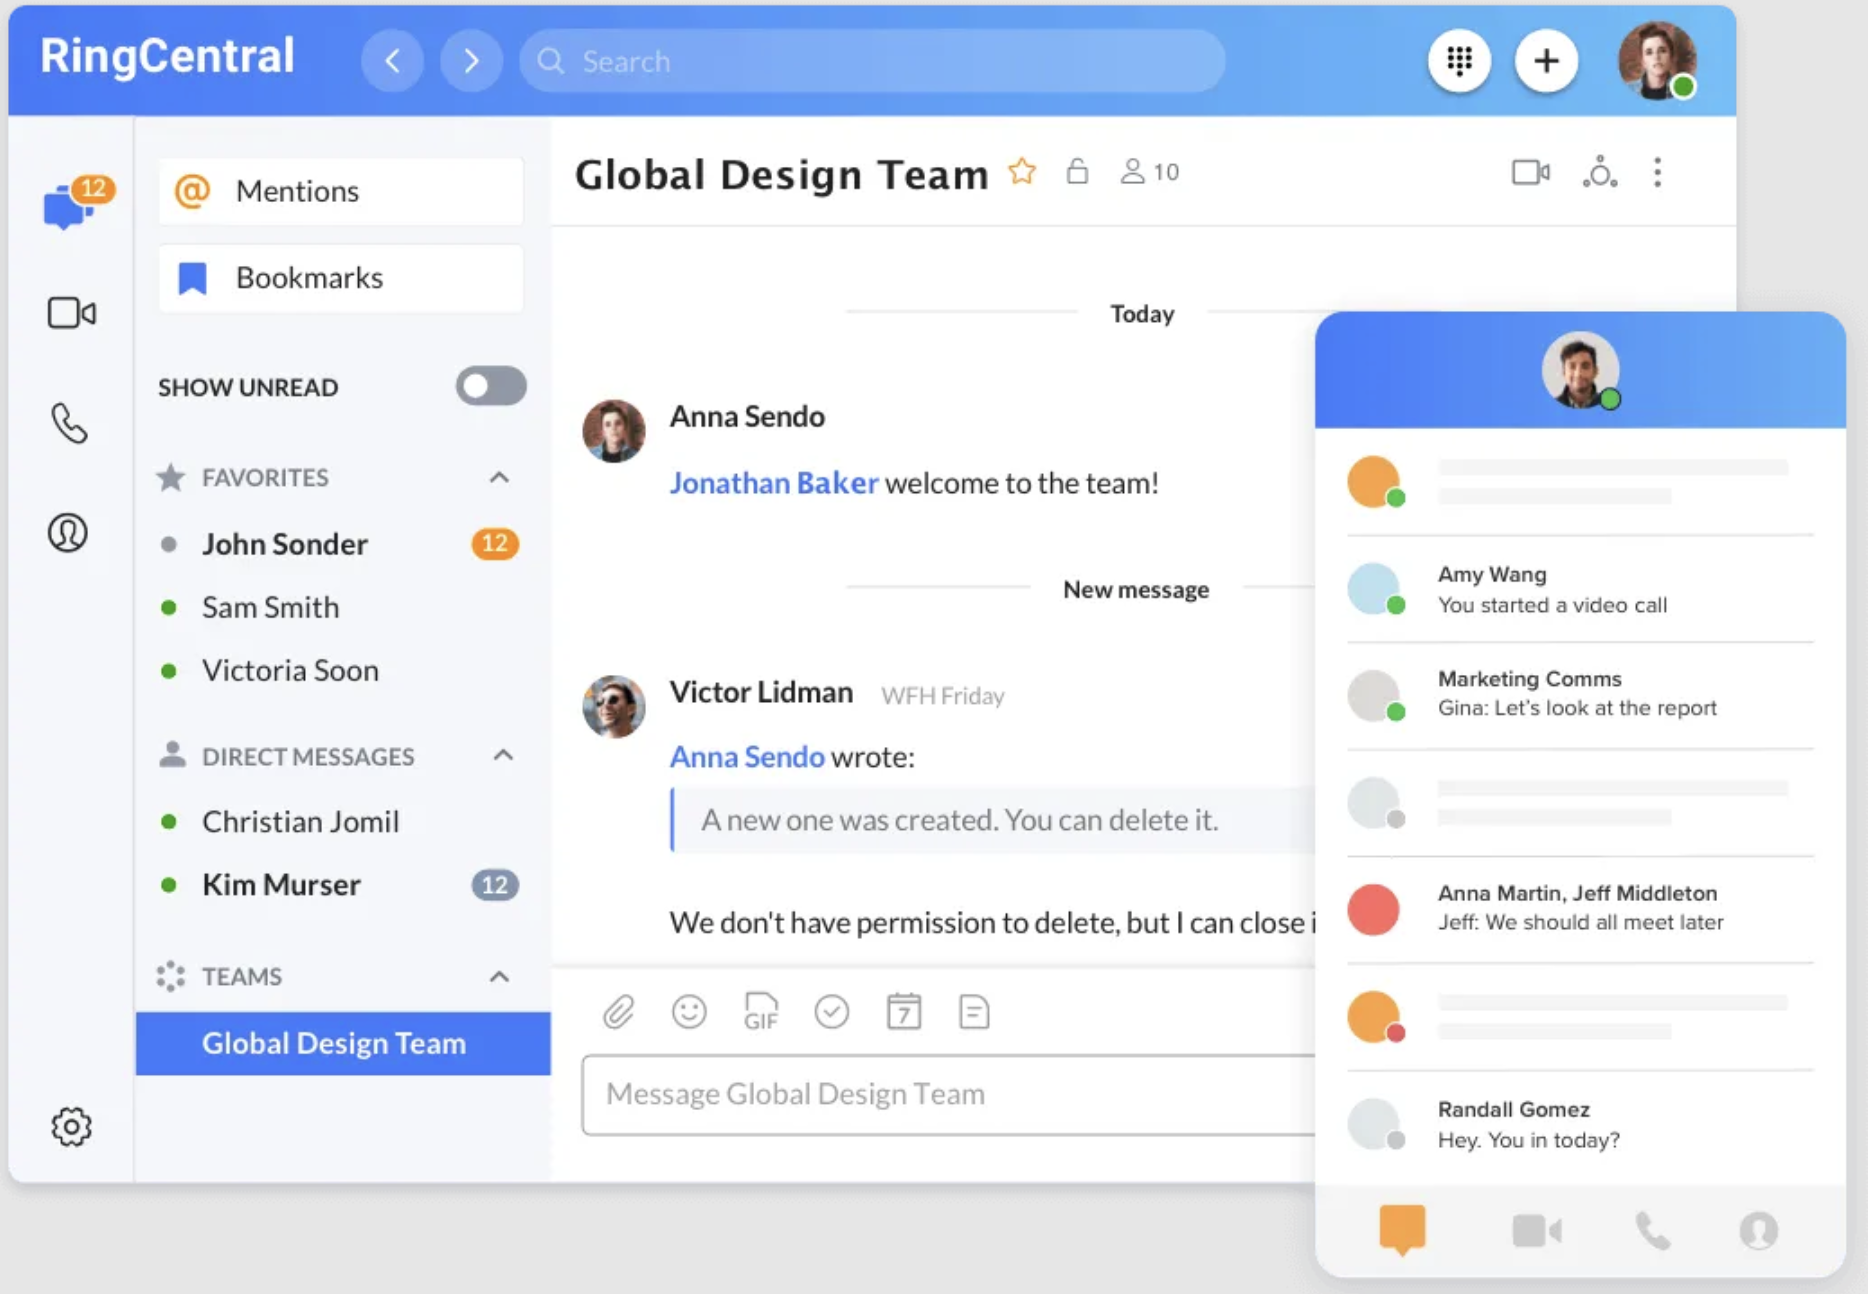 RingCentral MVP Messaging & Chat Capabilities